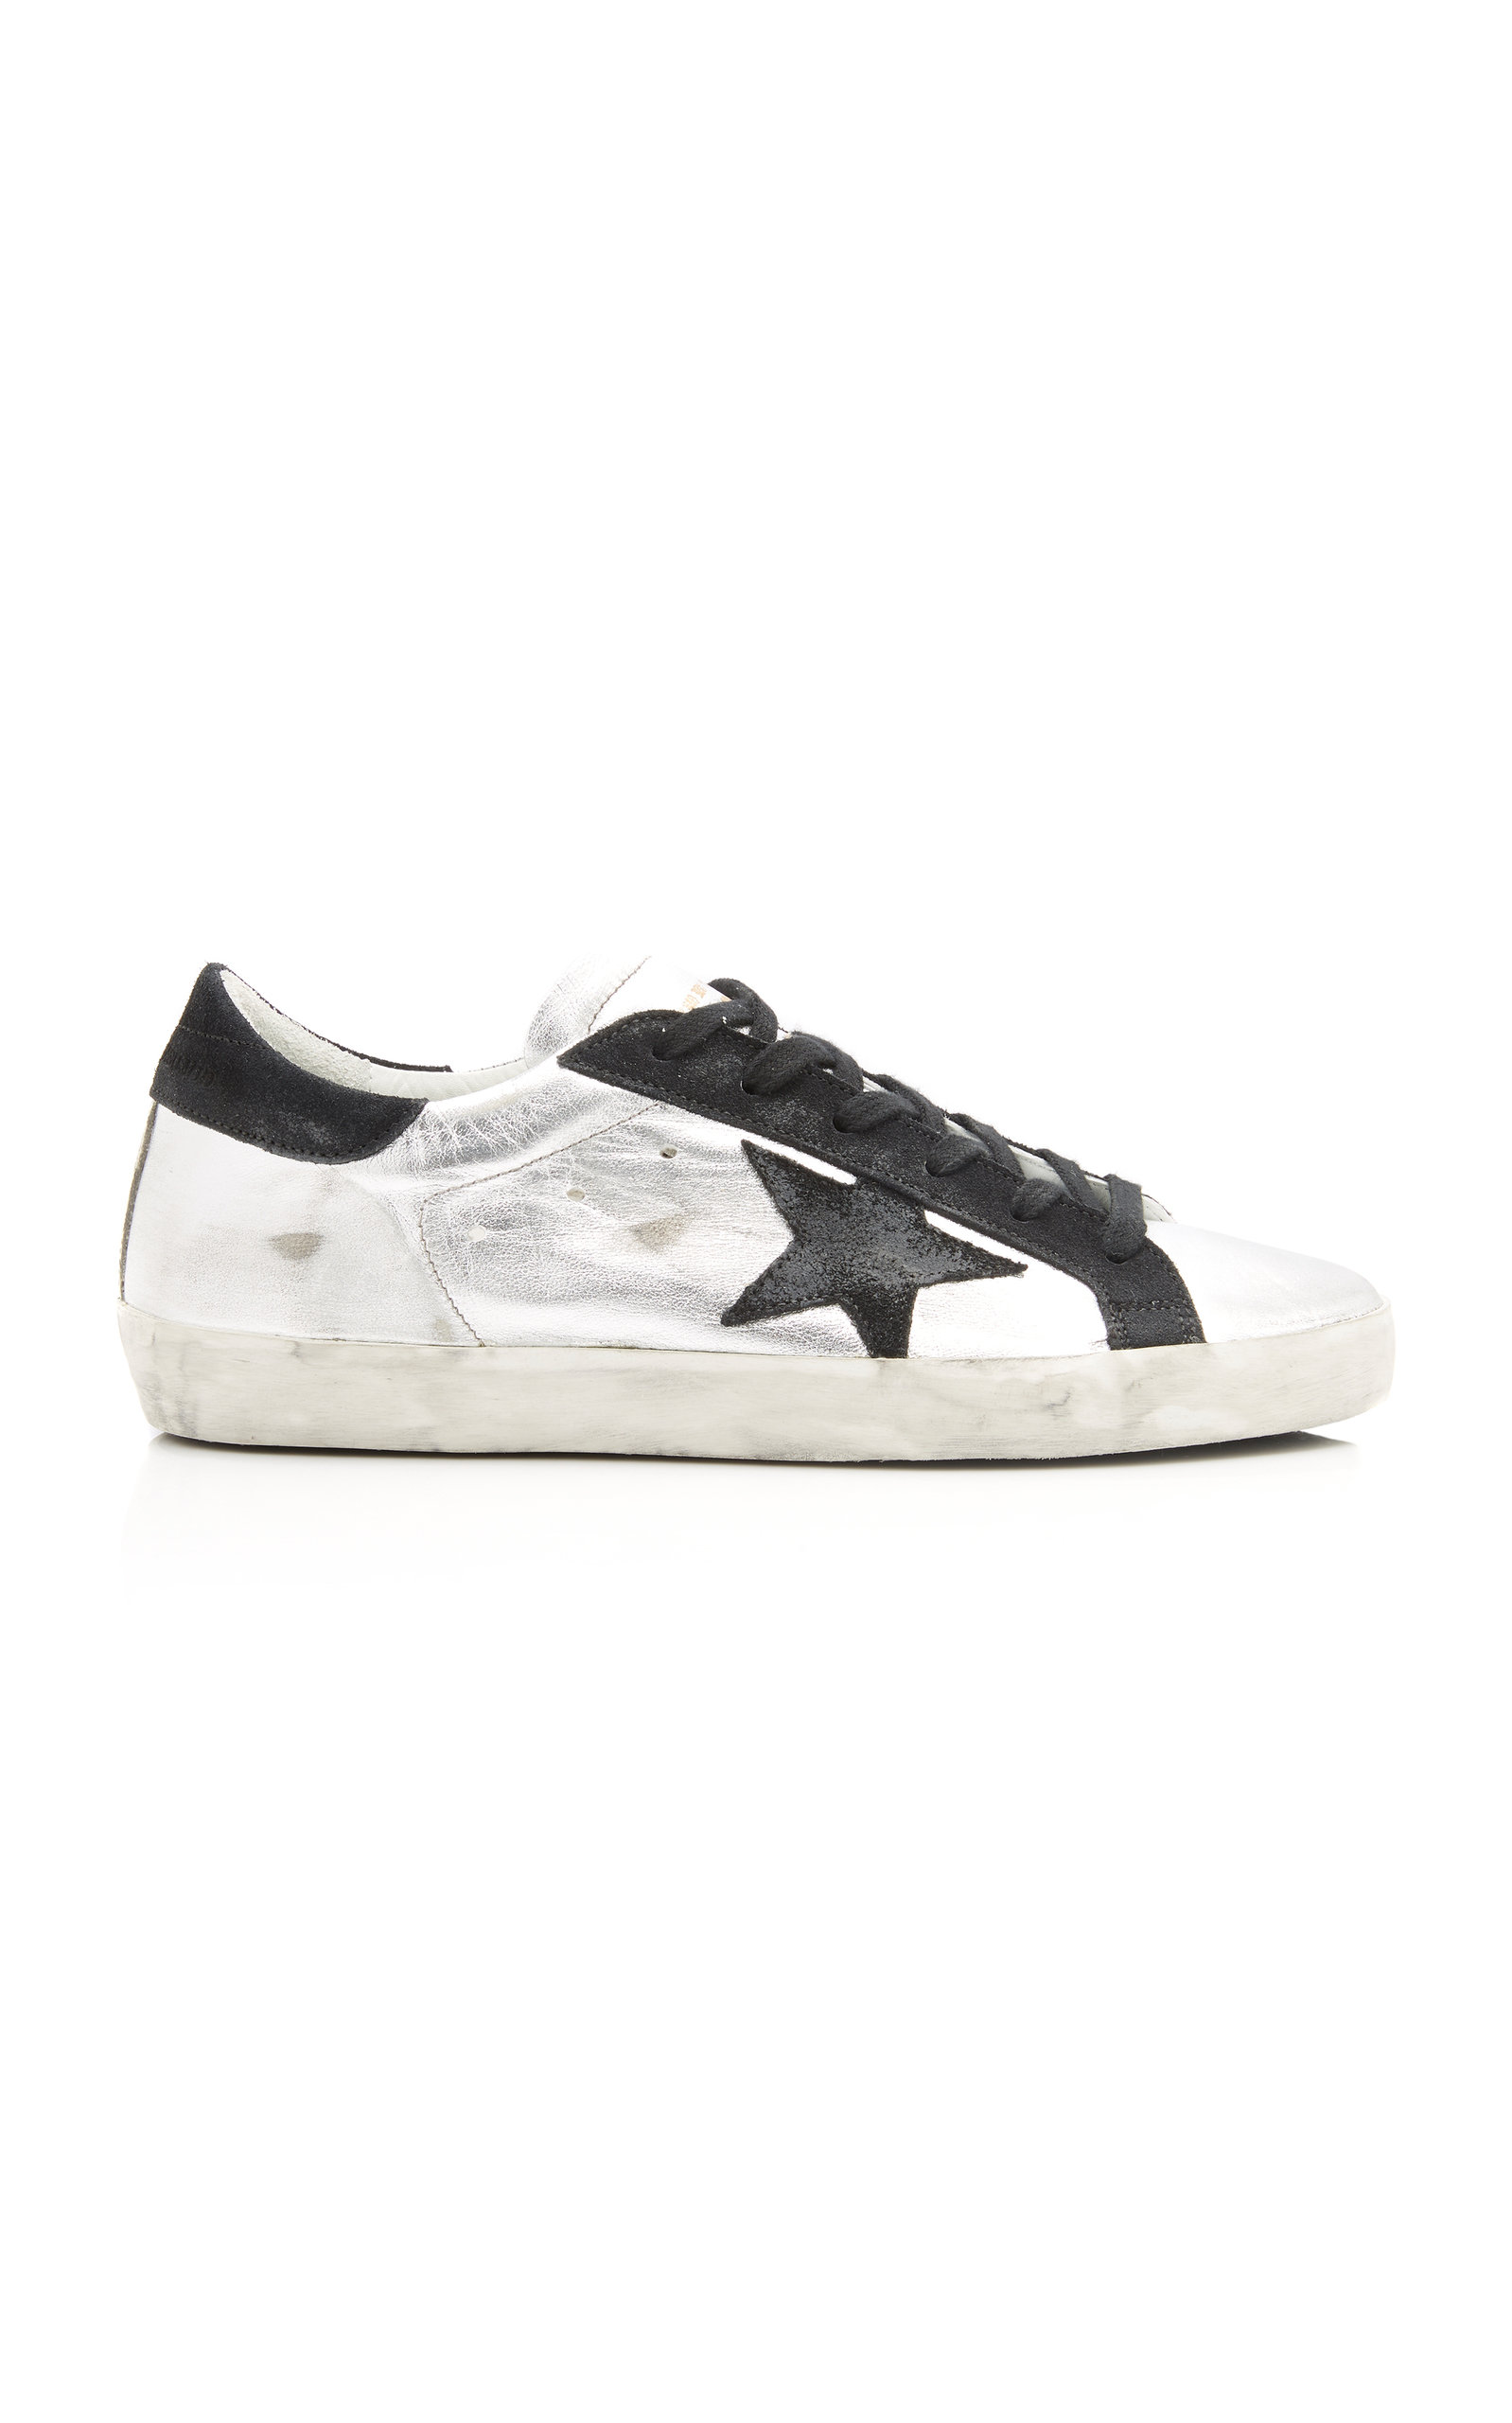 Golden Goose - Women's Superstar Distressed Two-Tone Leather And Suede Sneakers - Silver - Moda Operandi